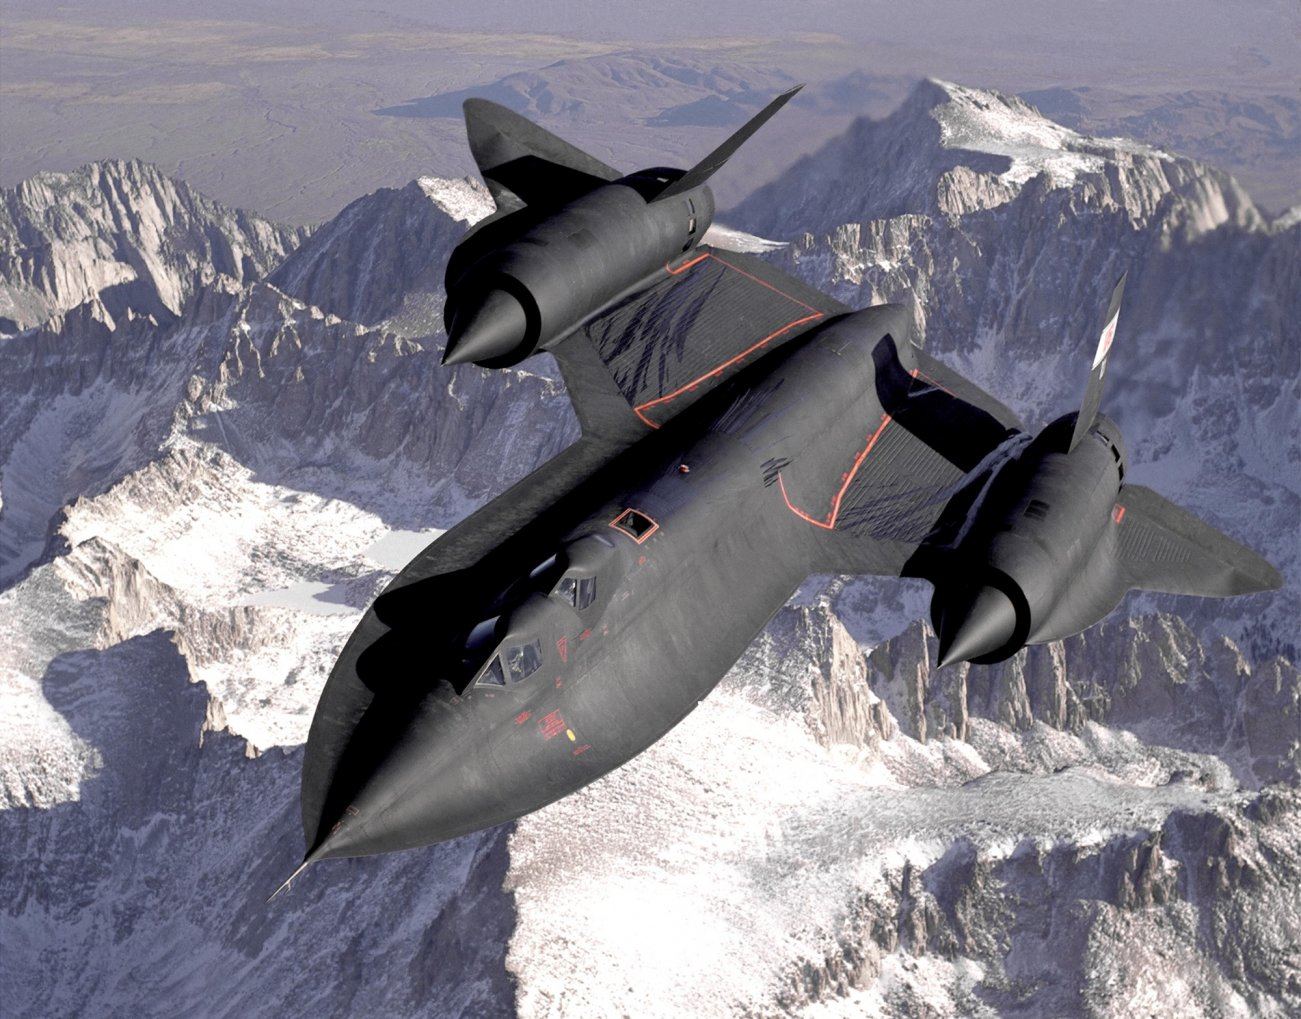 This Is How America's Top Secret SR-71 Spyplane Was Exposed